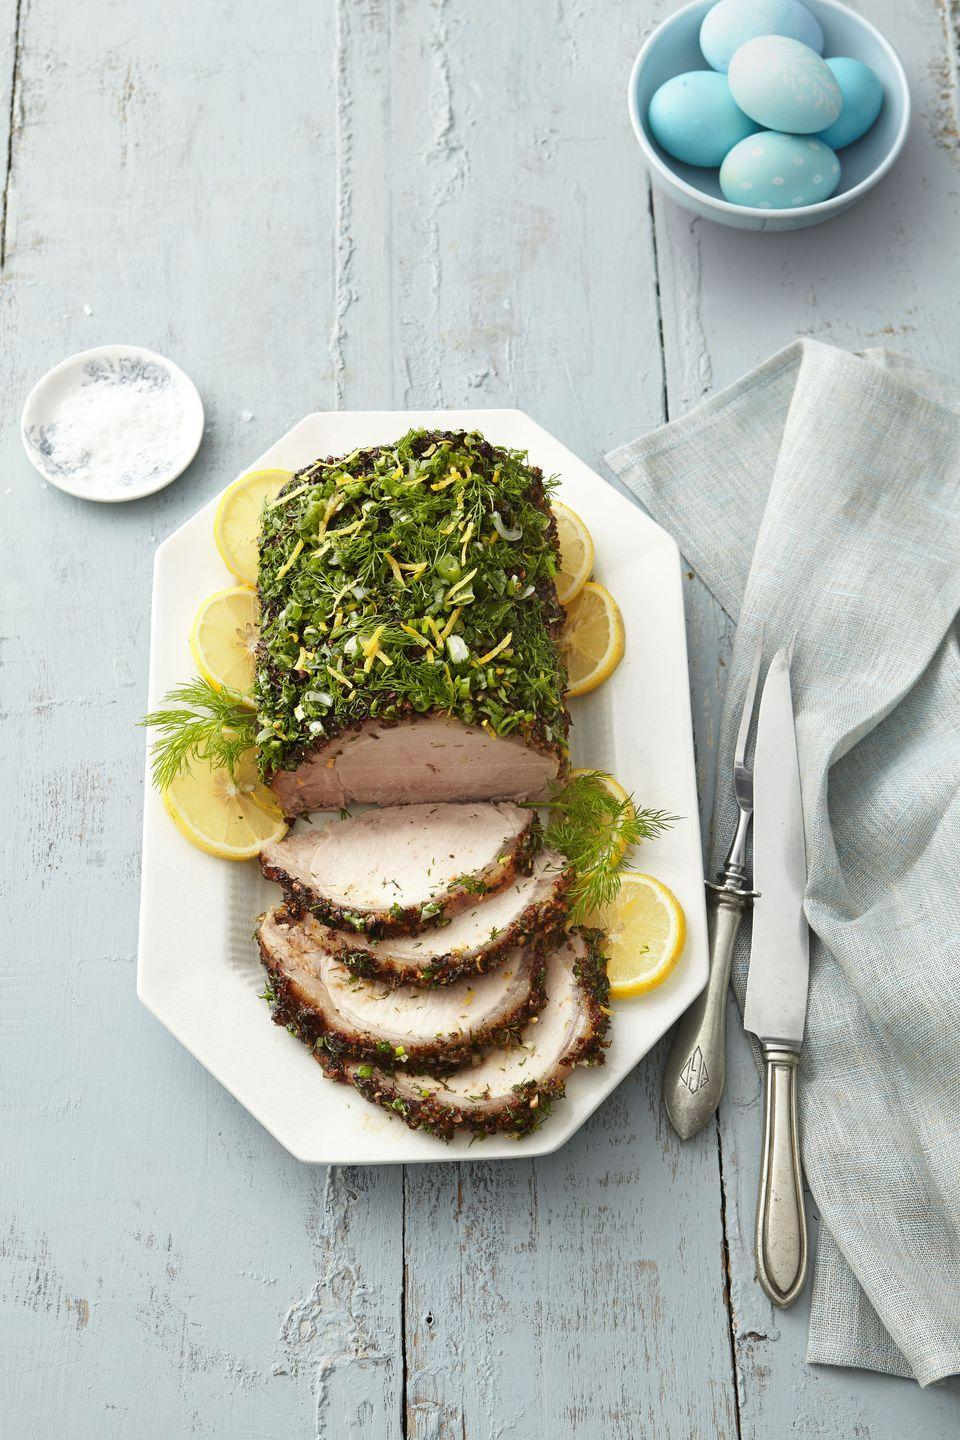 "<p>Fresh herbs make this roast worthy of any dinner party (<a href=""https://www.goodhousekeeping.com/holidays/easter-ideas/g2353/easter-dinner-menus/"" rel=""nofollow noopener"" target=""_blank"" data-ylk=""slk:Easter"" class=""link rapid-noclick-resp"">Easter</a>, anyone?).</p><p><a href=""https://www.goodhousekeeping.com/food-recipes/a1263/herb-crusted-pork-loin-recipe-ghk0414/"" rel=""nofollow noopener"" target=""_blank"" data-ylk=""slk:Get the recipe for Herb-Crusted Pork Loin »"" class=""link rapid-noclick-resp""><em>Get the recipe for Herb-Crusted Pork Loin » </em></a></p>"